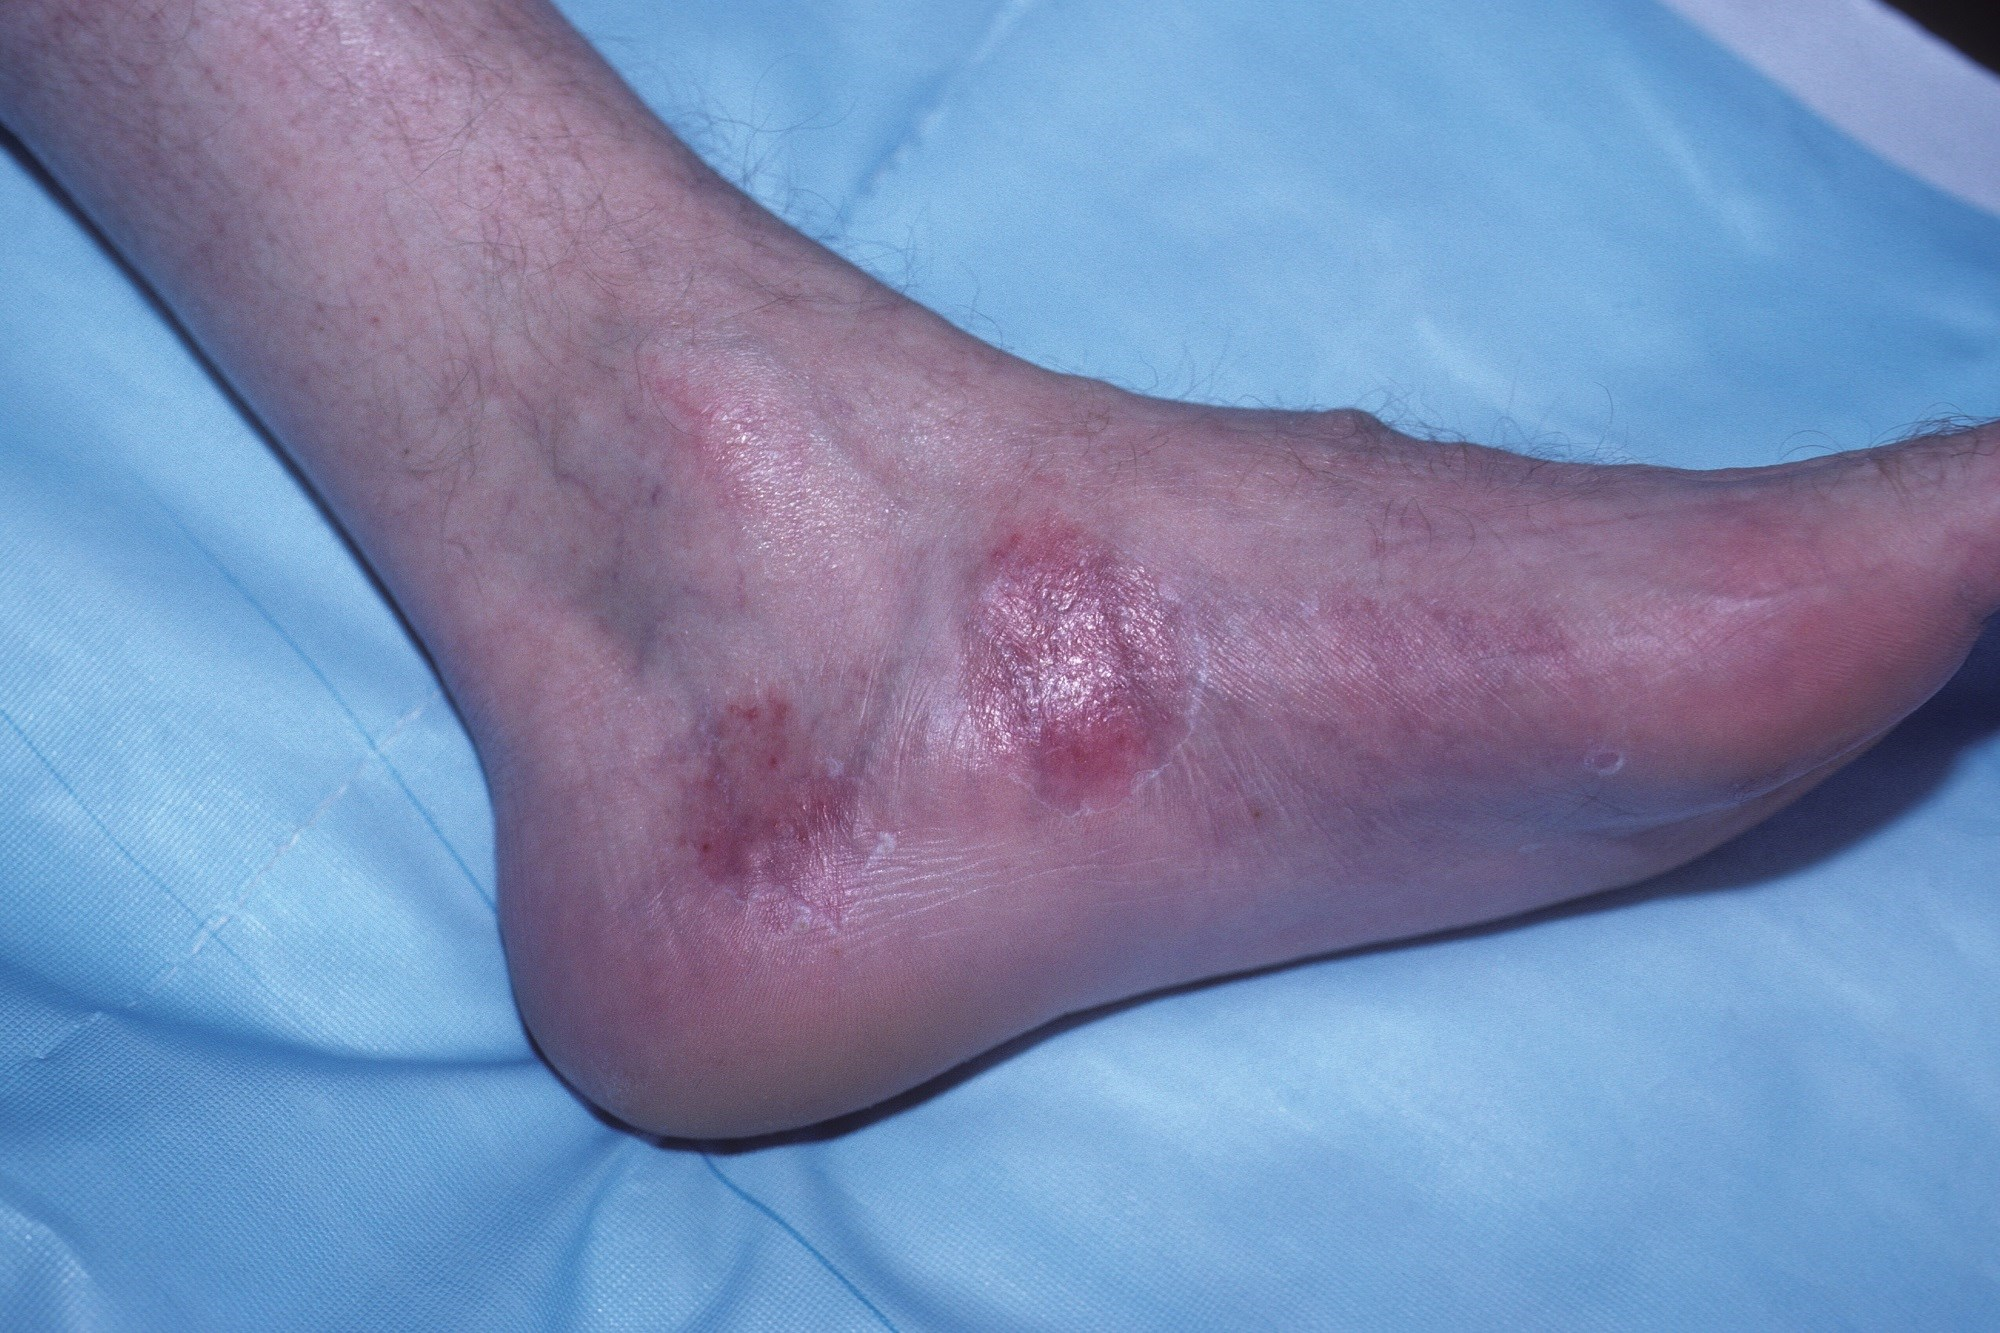 Prevalence of Psoriatic Arthritis Quantified in Patients With Psoriasis